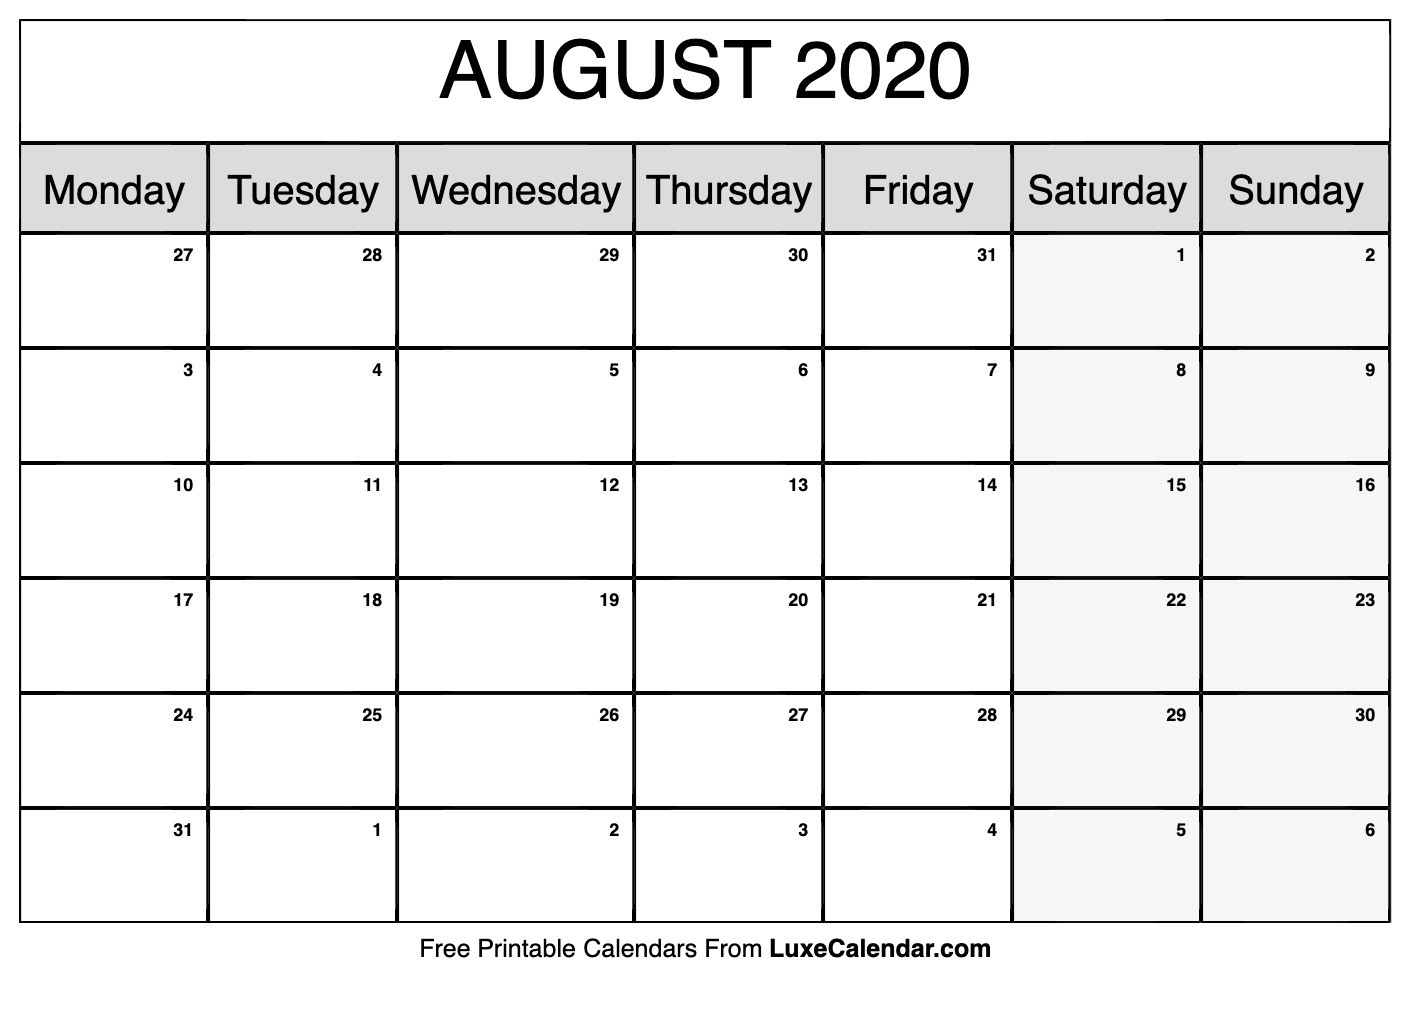 Blank August 2020 Calendar Printable - Luxe Calendar  August 2020 Calendar With Lines